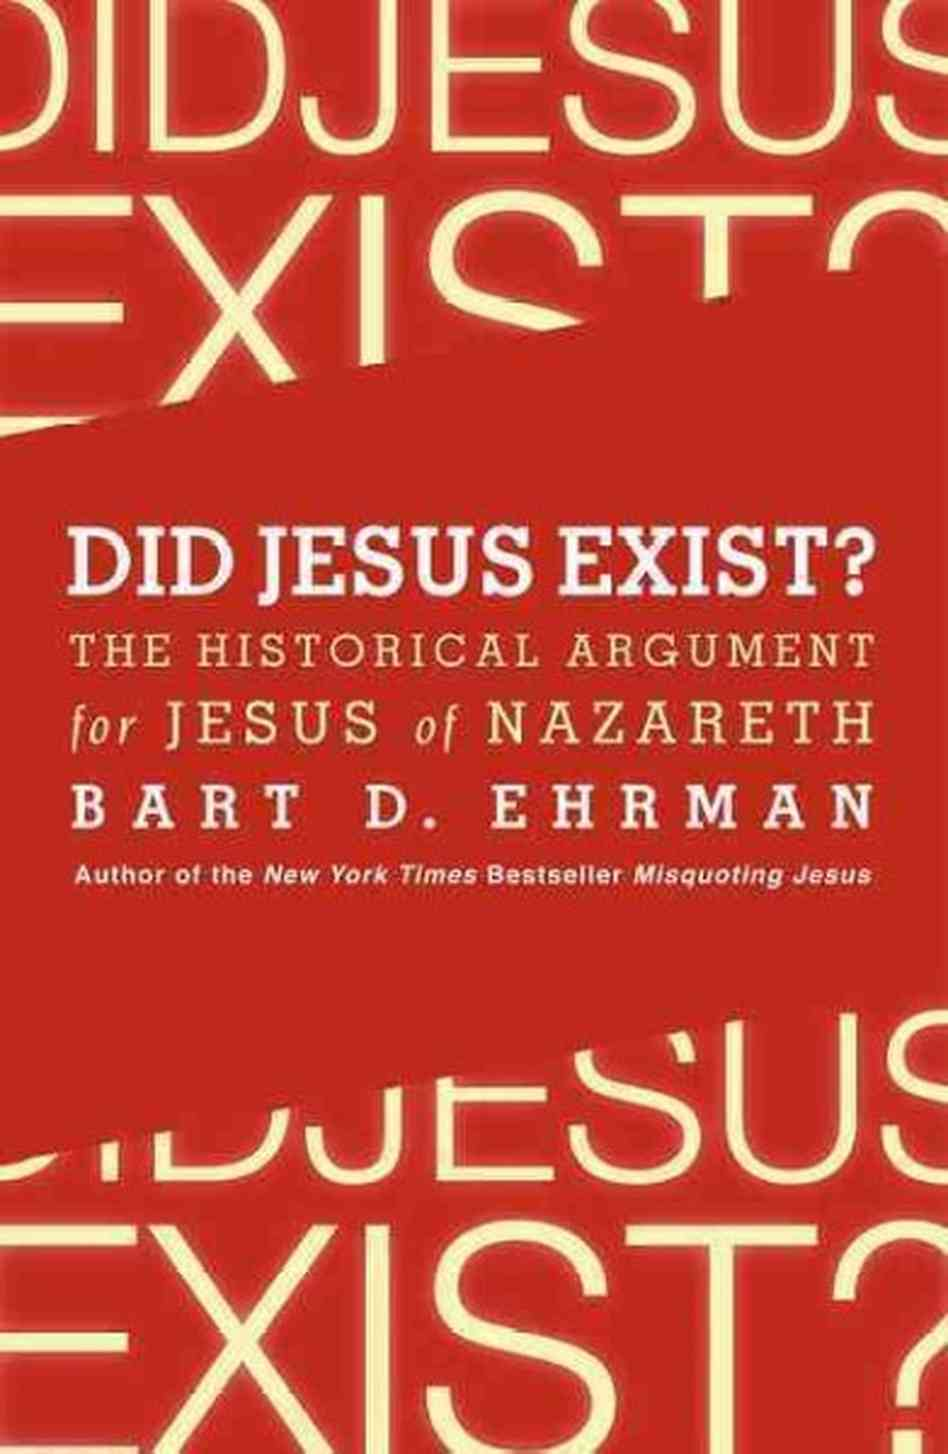 https://www.logosapologia.org/wp-content/uploads/2014/03/Ehrman-Did-Jesus-exist.jpg